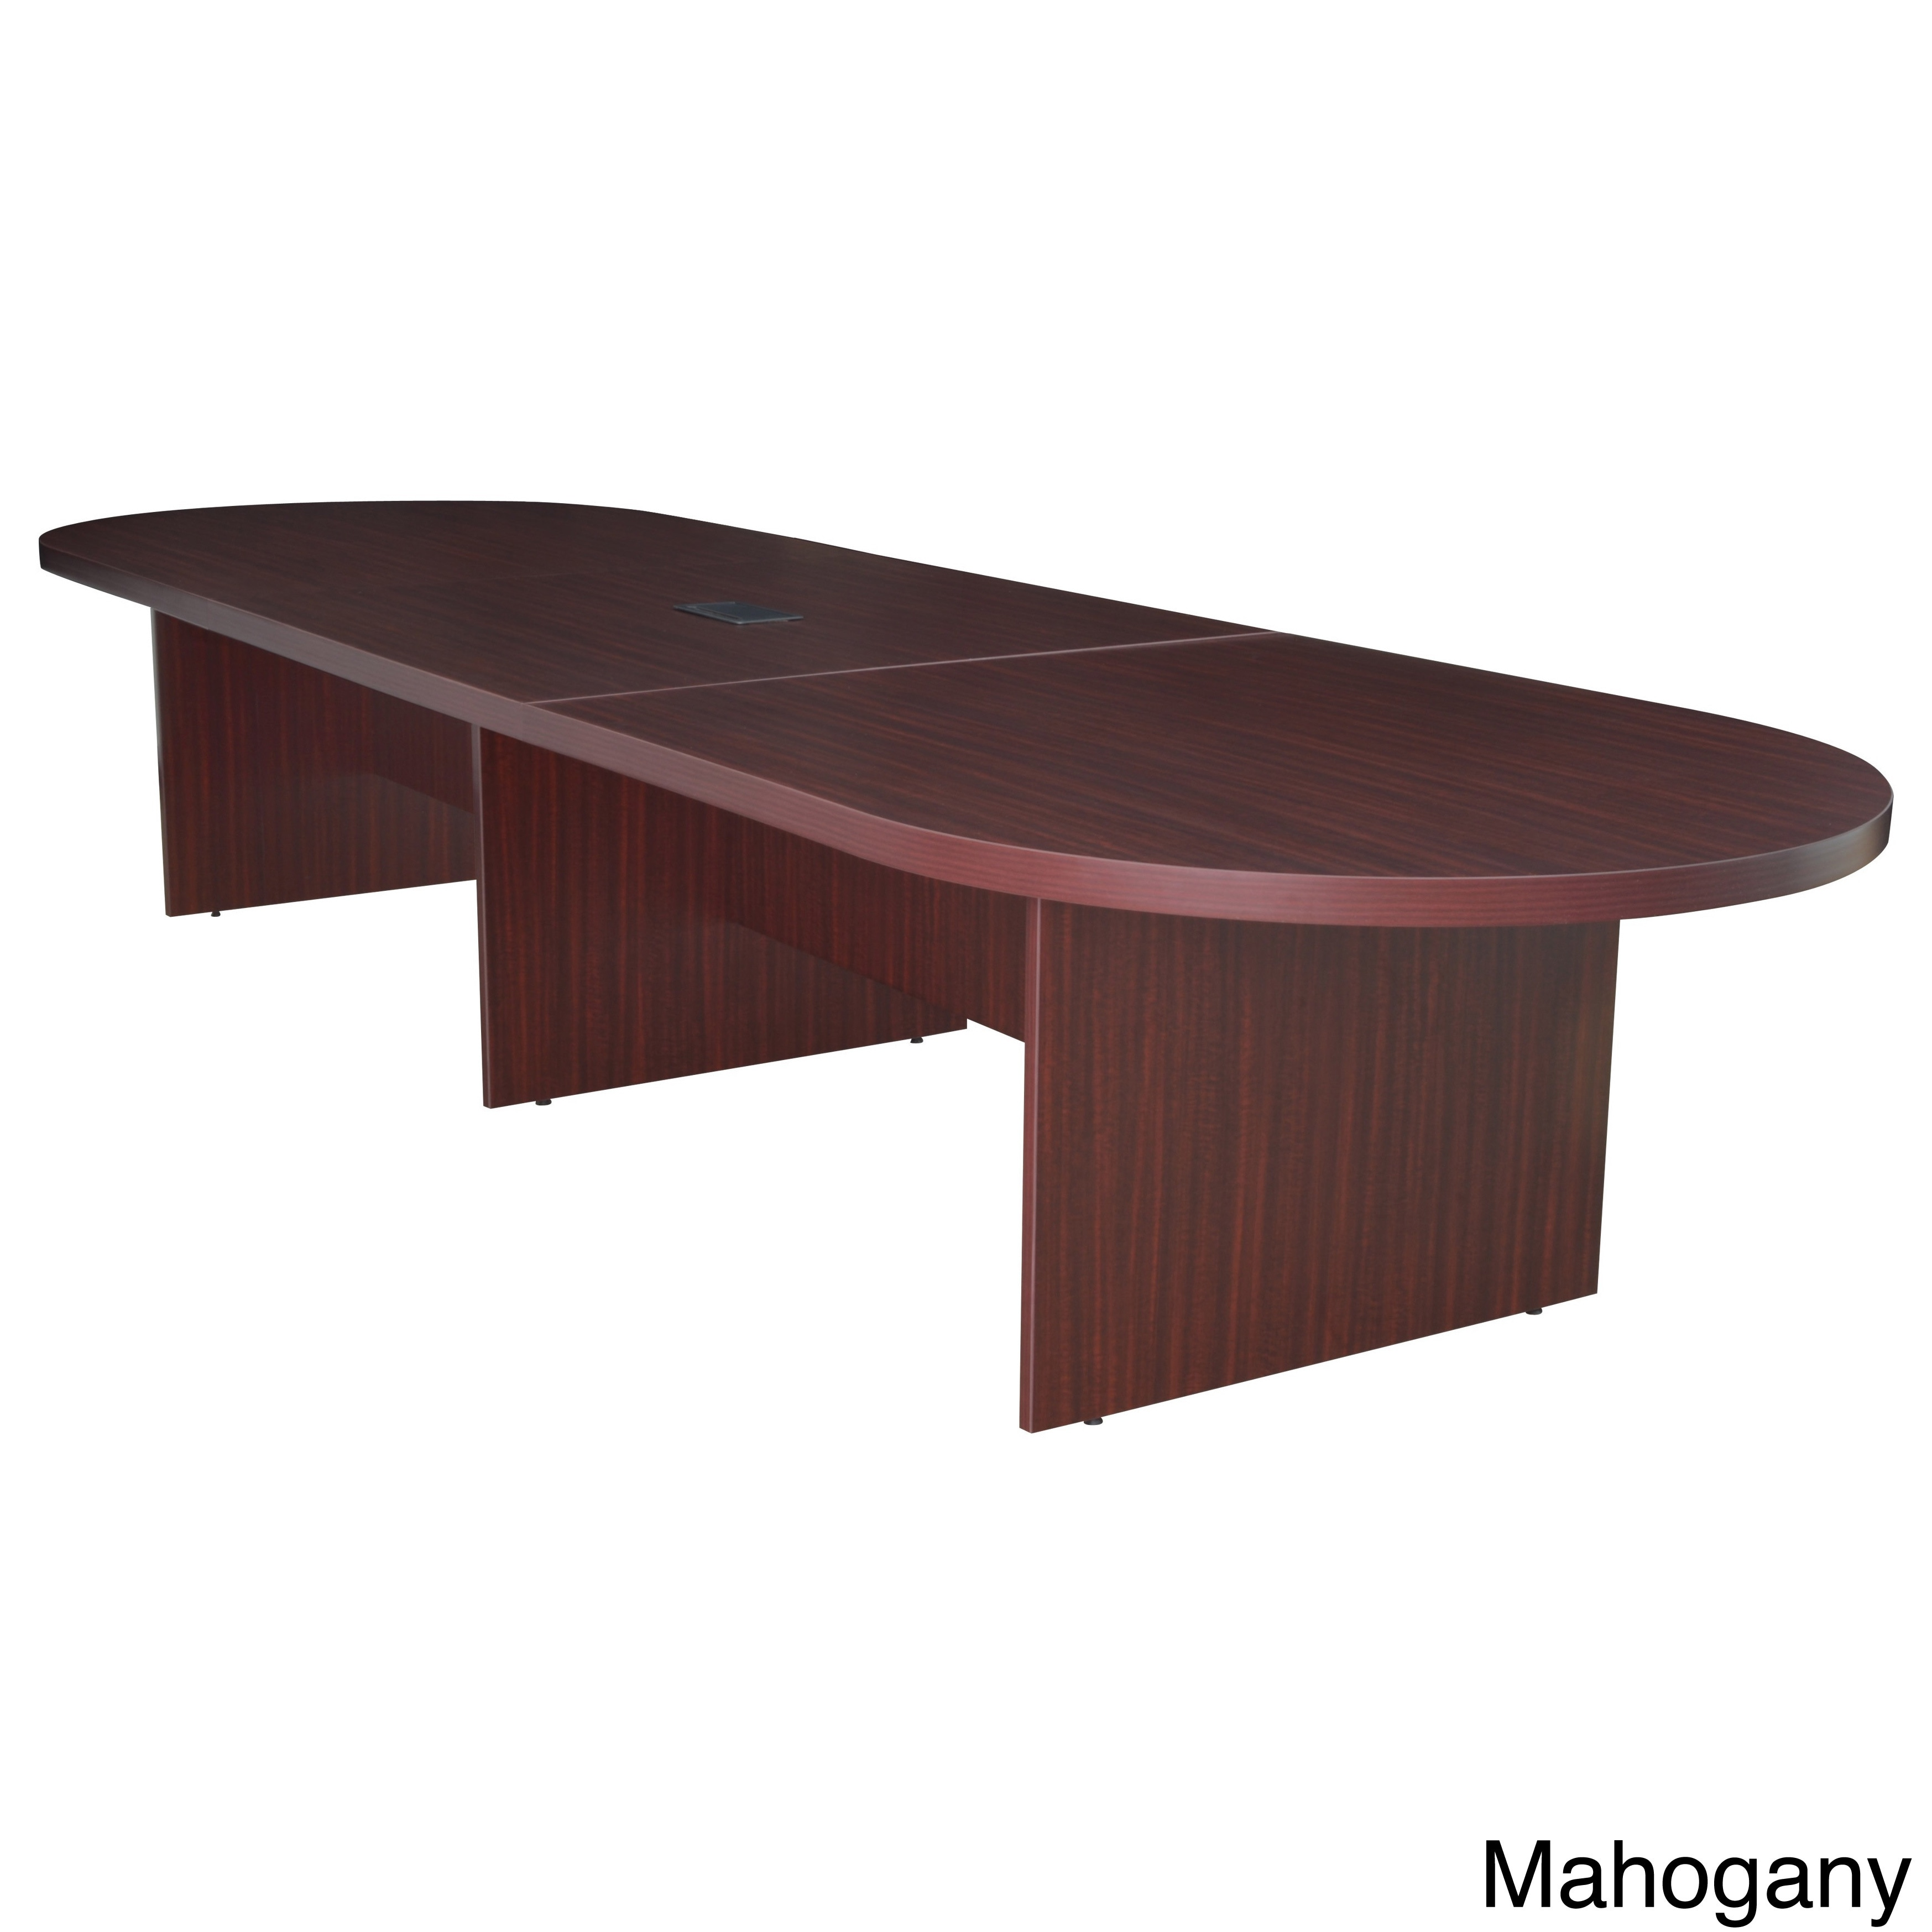 Amazing 144 Inch Modular Race Track Conference Table With Power Data Grommet Beutiful Home Inspiration Aditmahrainfo